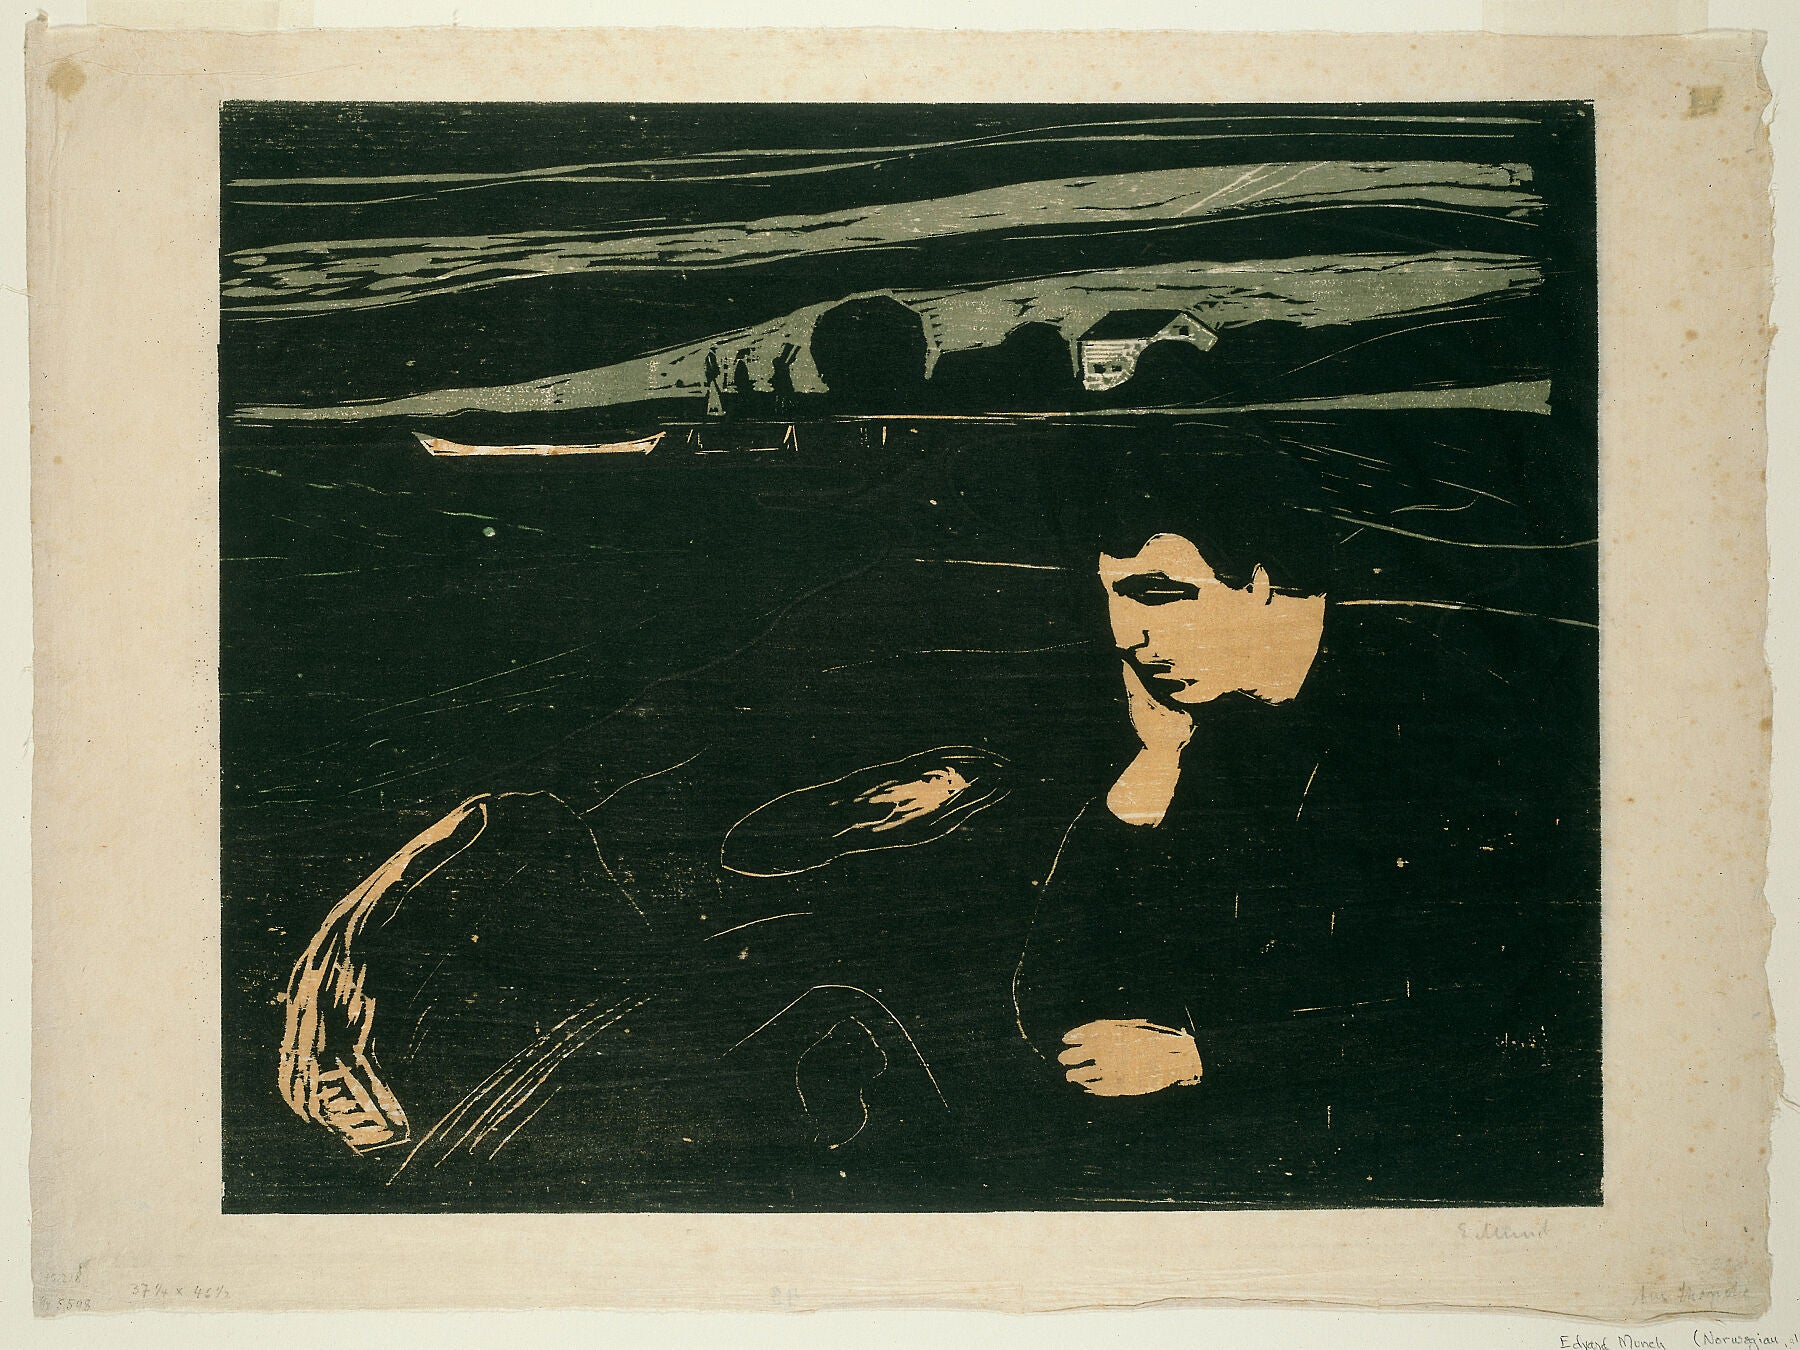 Melancholy III by Edvard Munch 1863-1944), 1902 - printed by Lassally (German, late 19th-early 20th century).